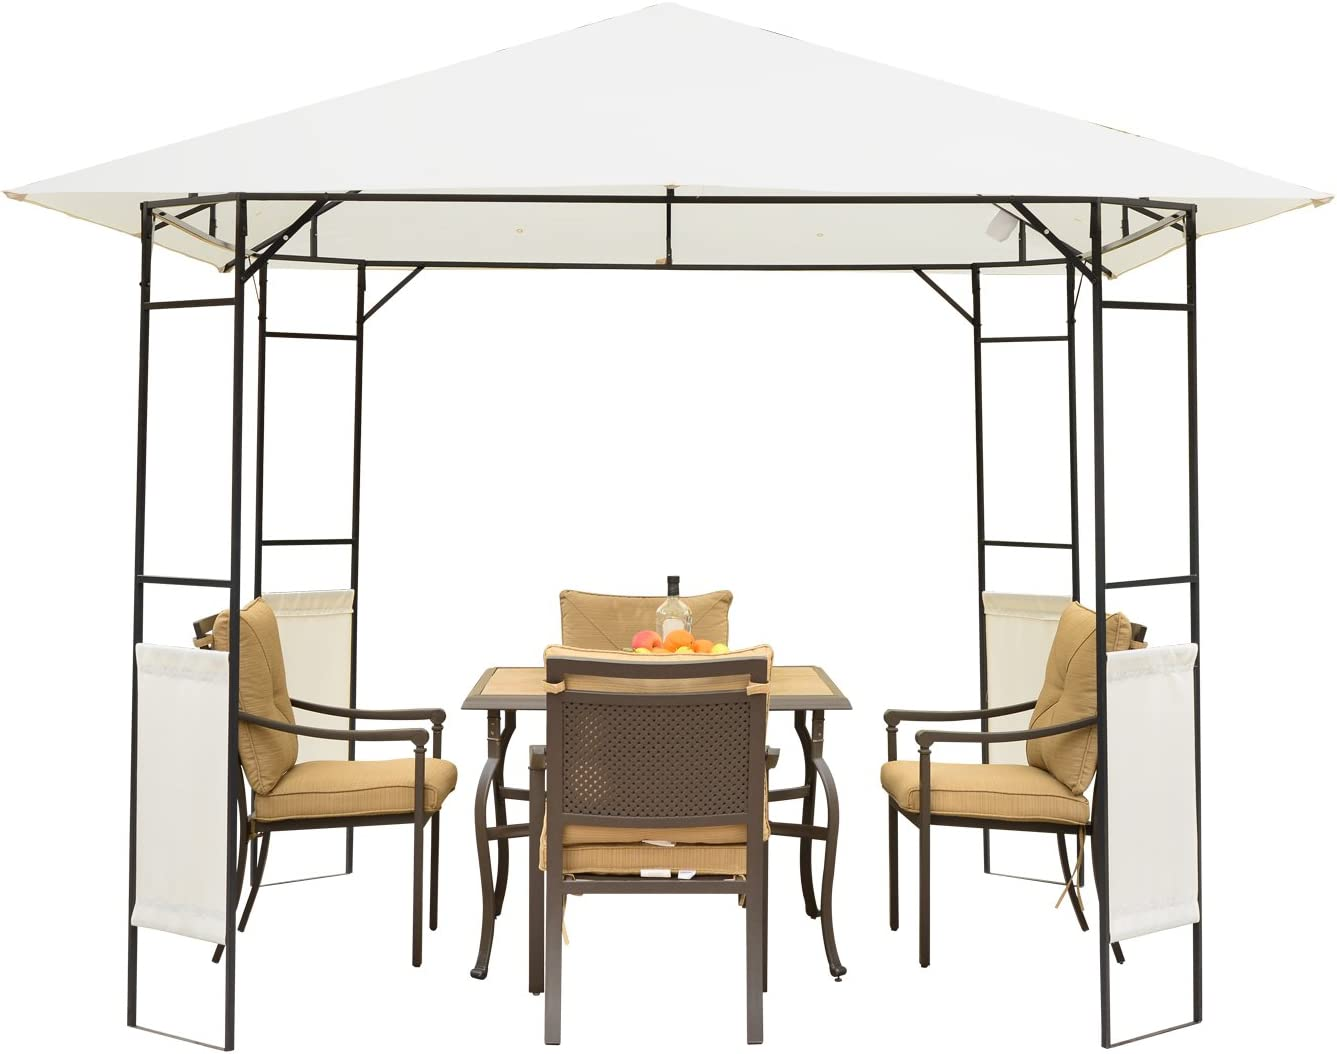 Outsunny Patio Garden Metal Gazebo Marquee Steel Frame with Canopy Awning Tent Water Resistant Cream